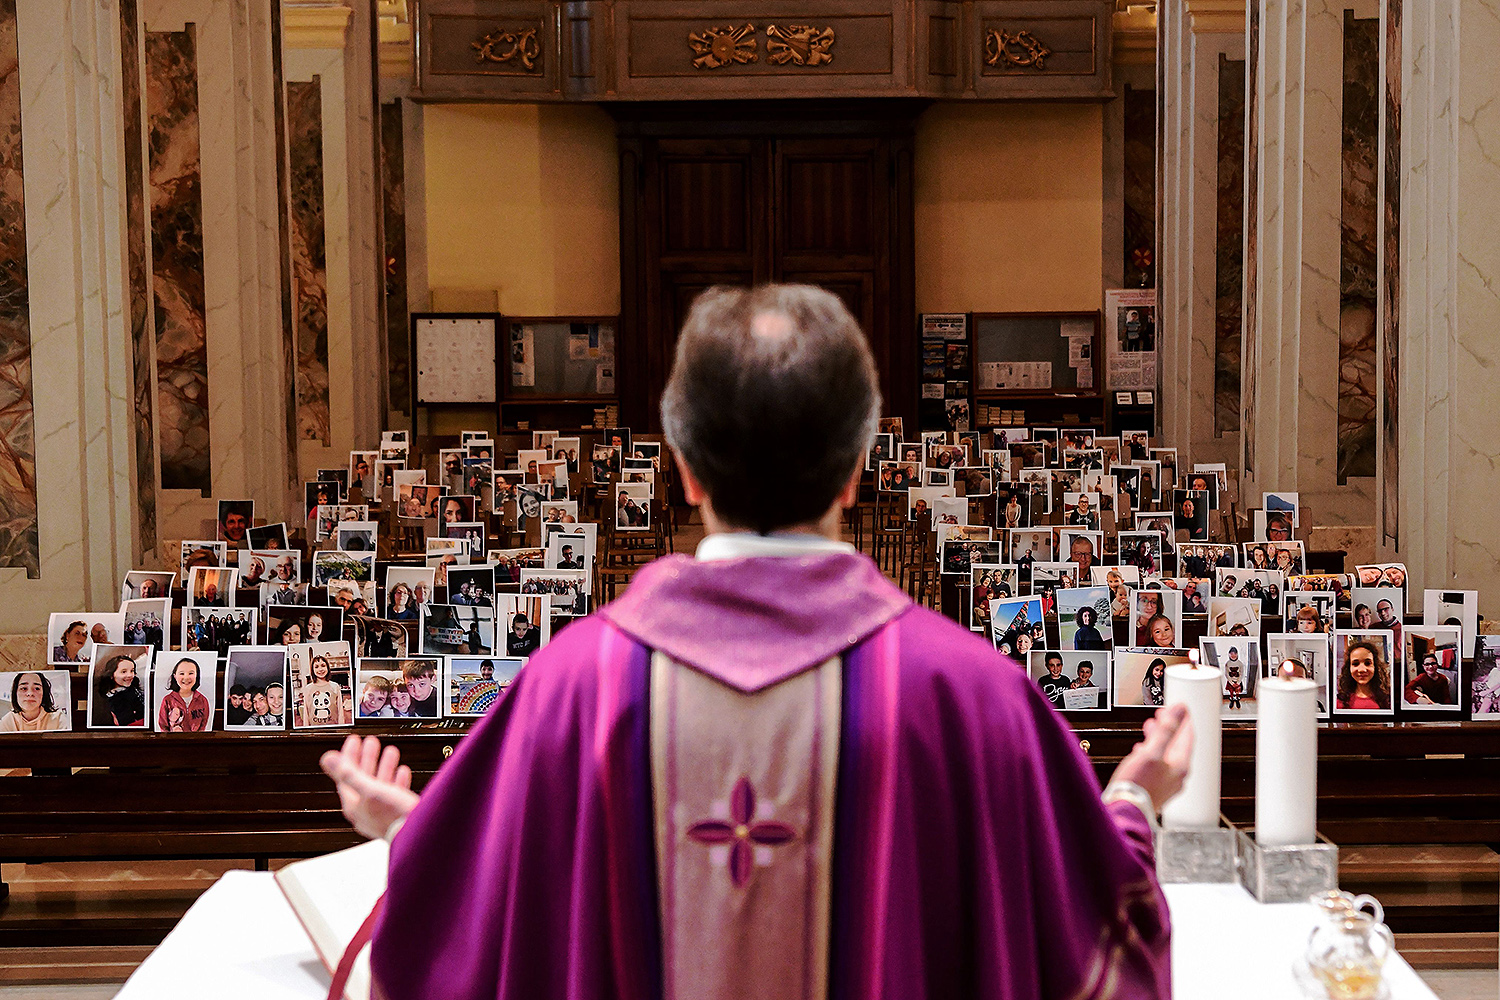 The Rev. Giuseppe Corbari, a priest in the village of Robbiano, Italy, near Milan, celebrates Mass in front of photographs of his congregation attached to empty pews March 22. The priest appealed to his parishioners to send him selfies so he wouldn't be alone when celebrating Mass. PIERO CRUCIATTI/AFP via Getty Images